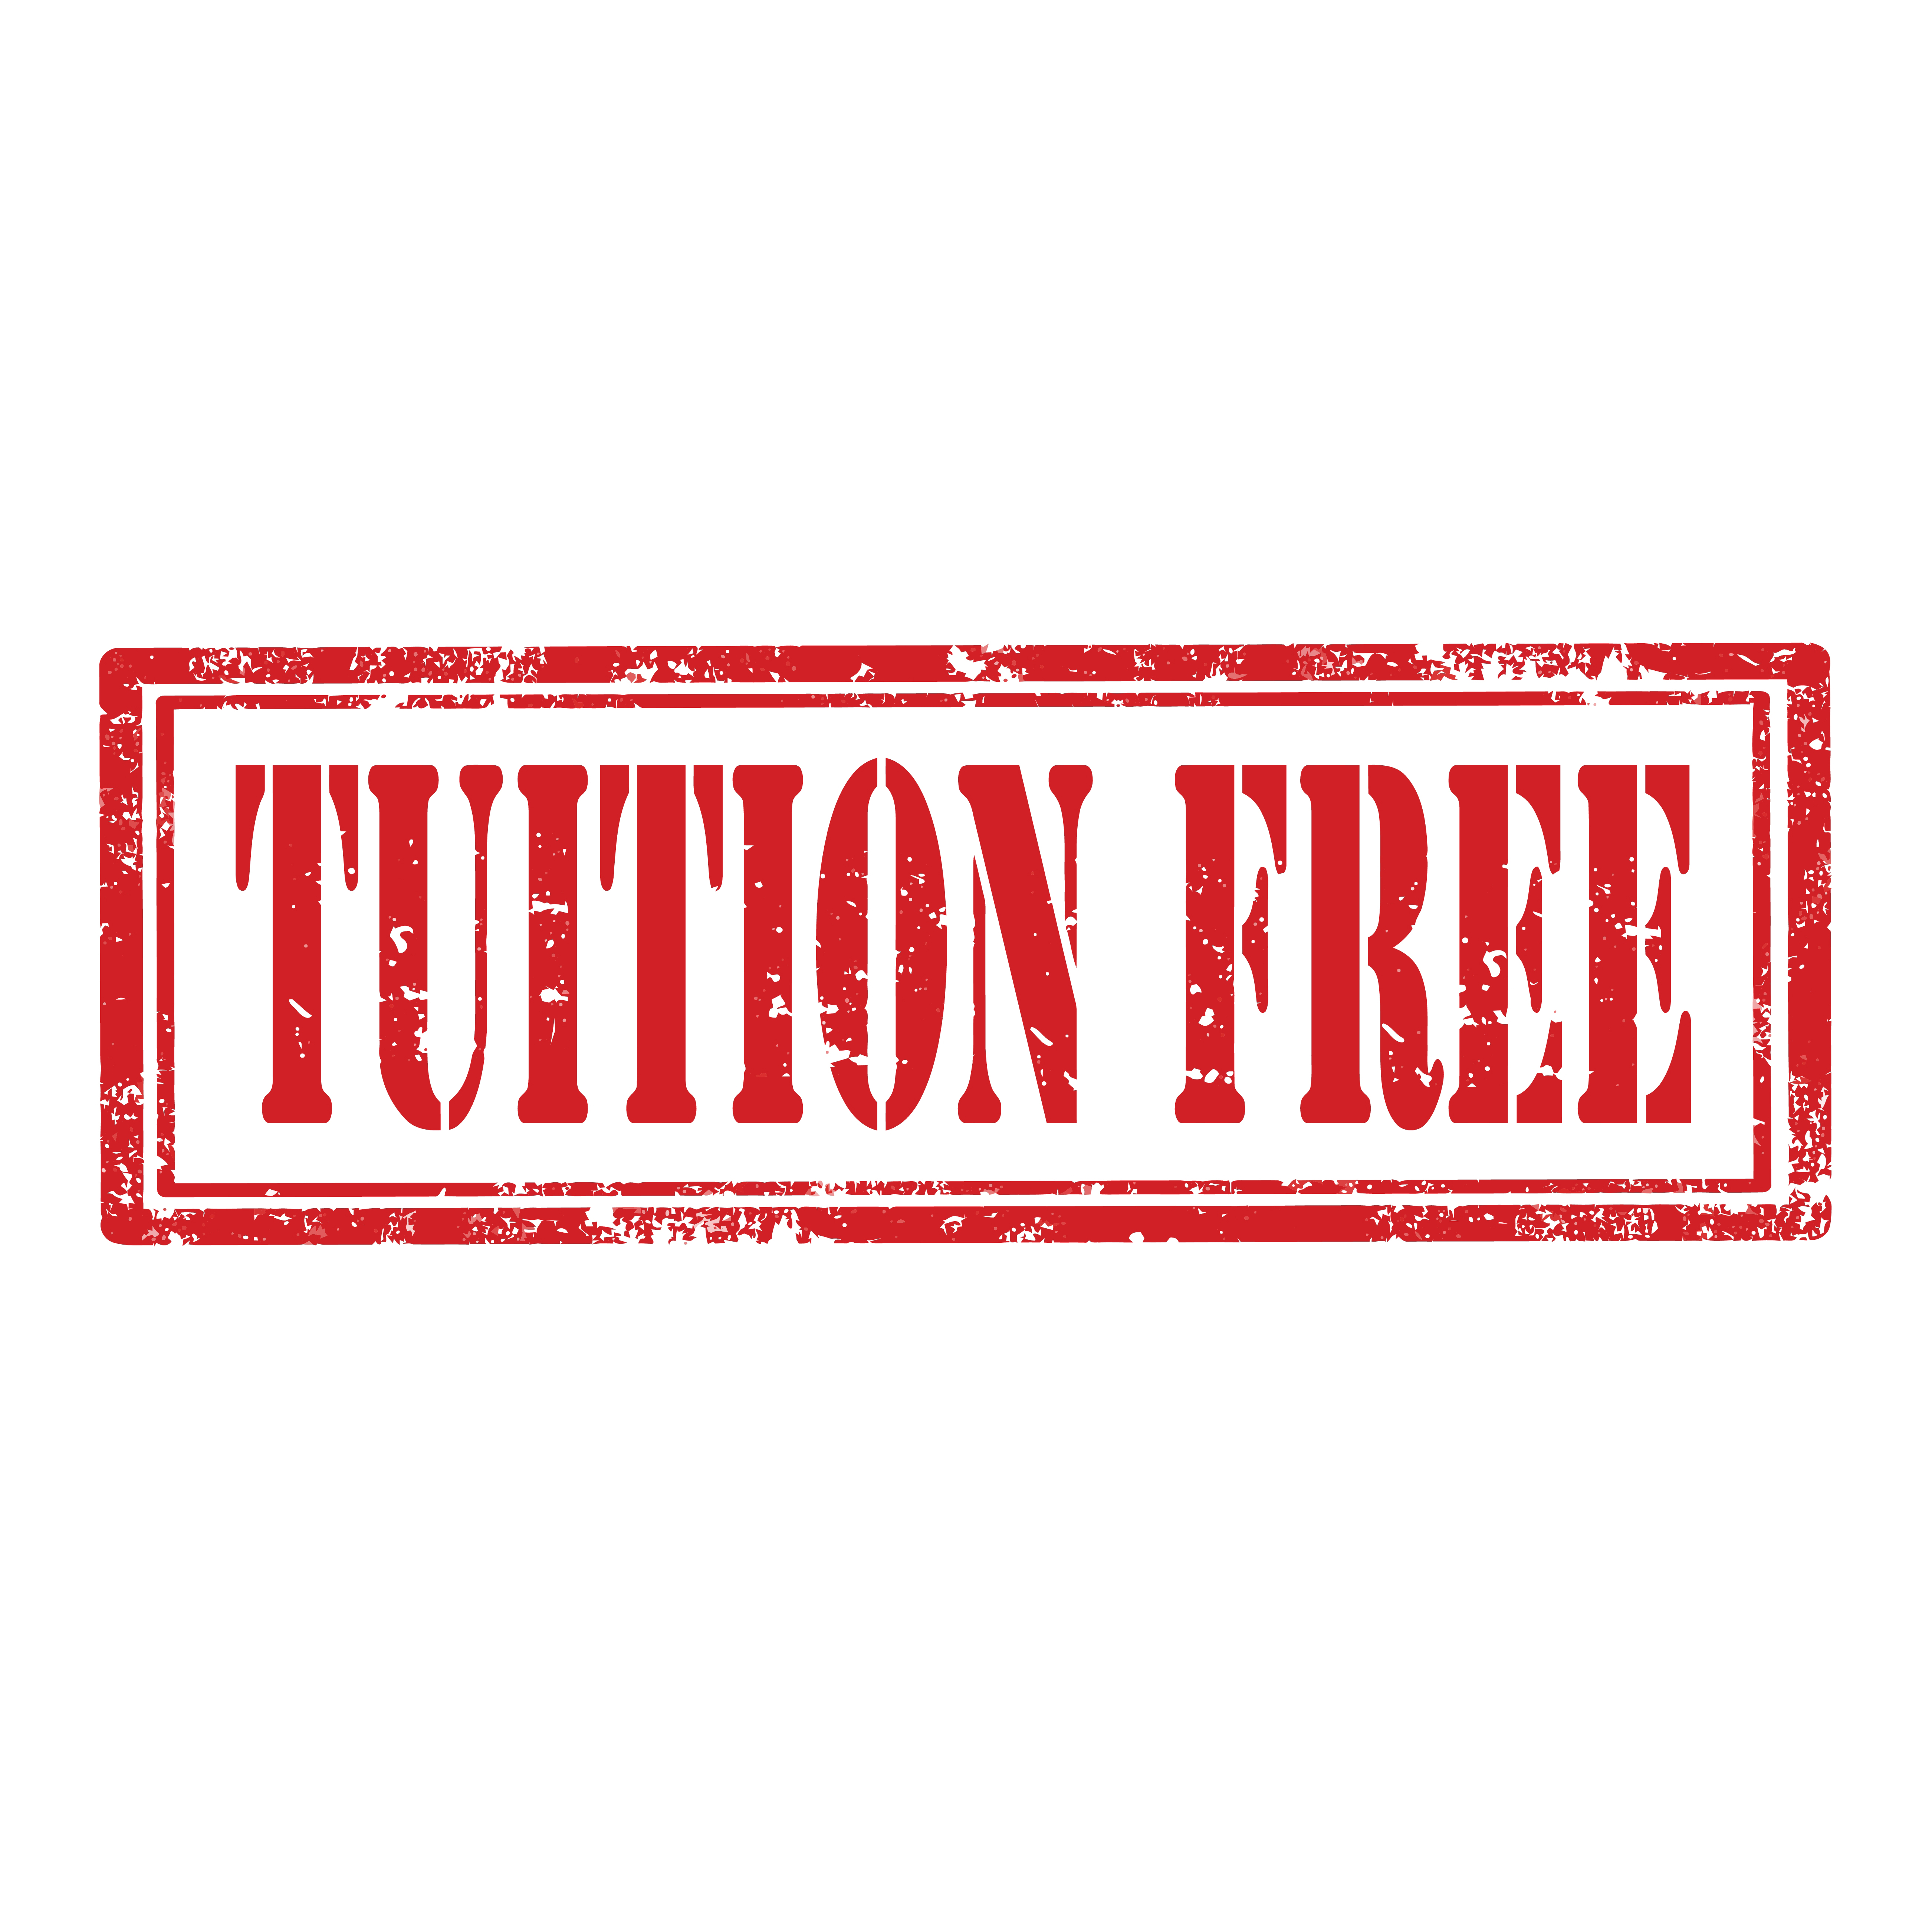 Uit Offers All Students A Distinct Advantage Over Many Universities Around The World There Are No Tuition Fees For International To Study At